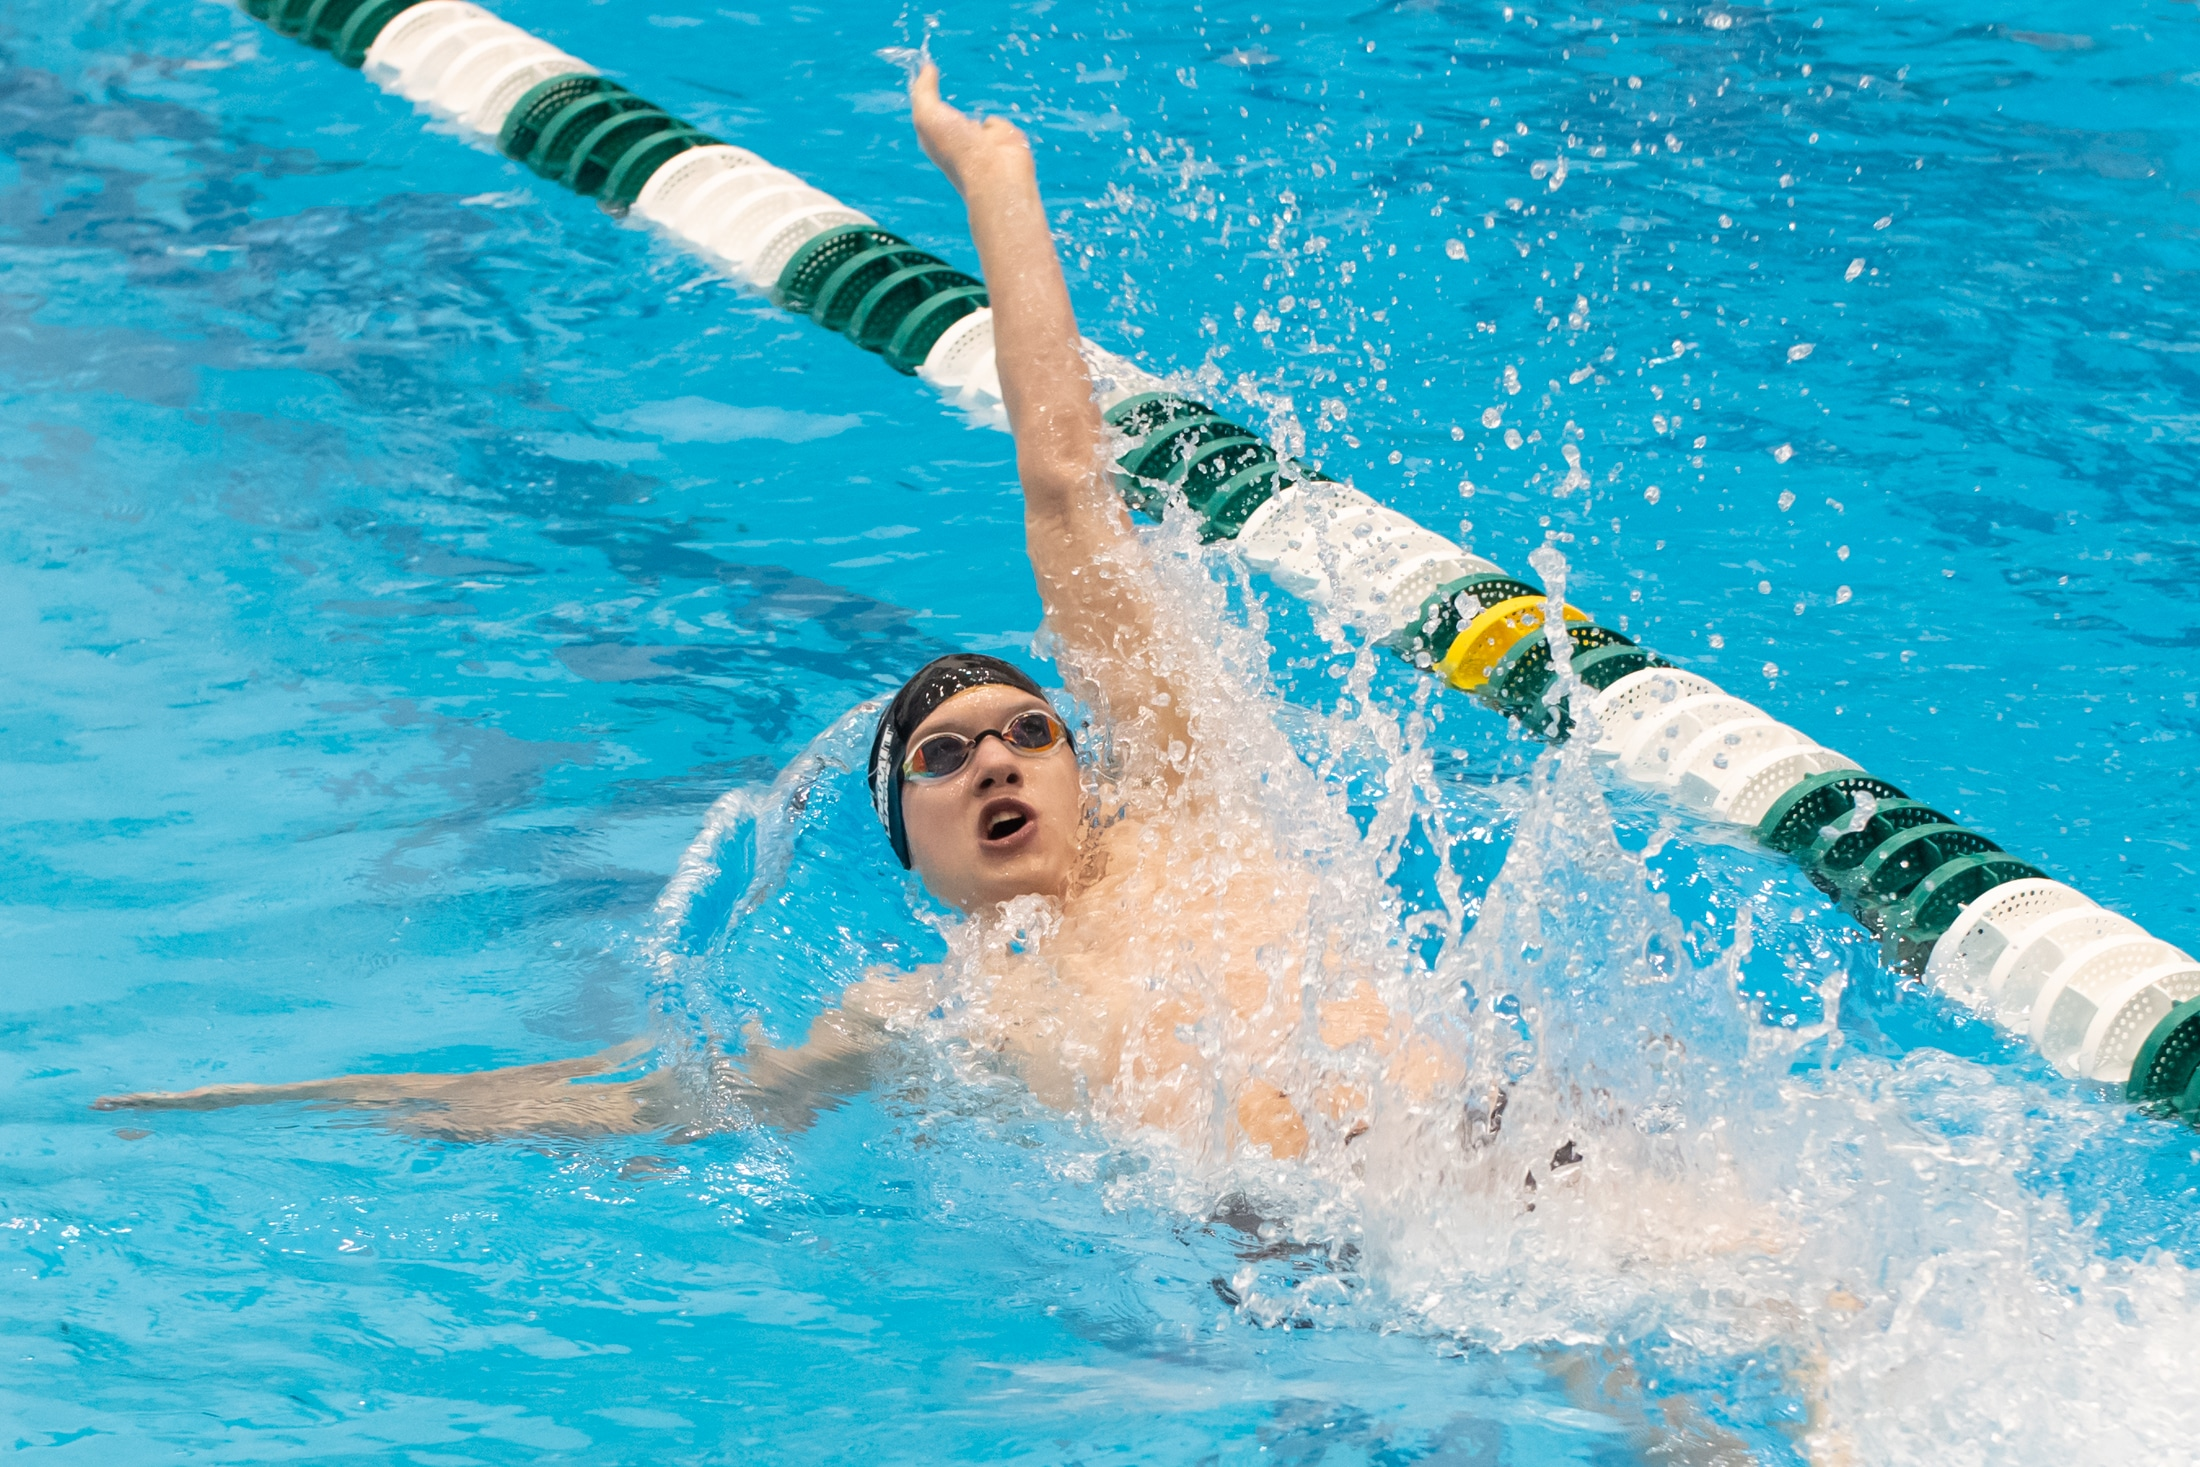 Part III: The 3 KEYS to a FAST Backstroke Kick (Video Analysis)